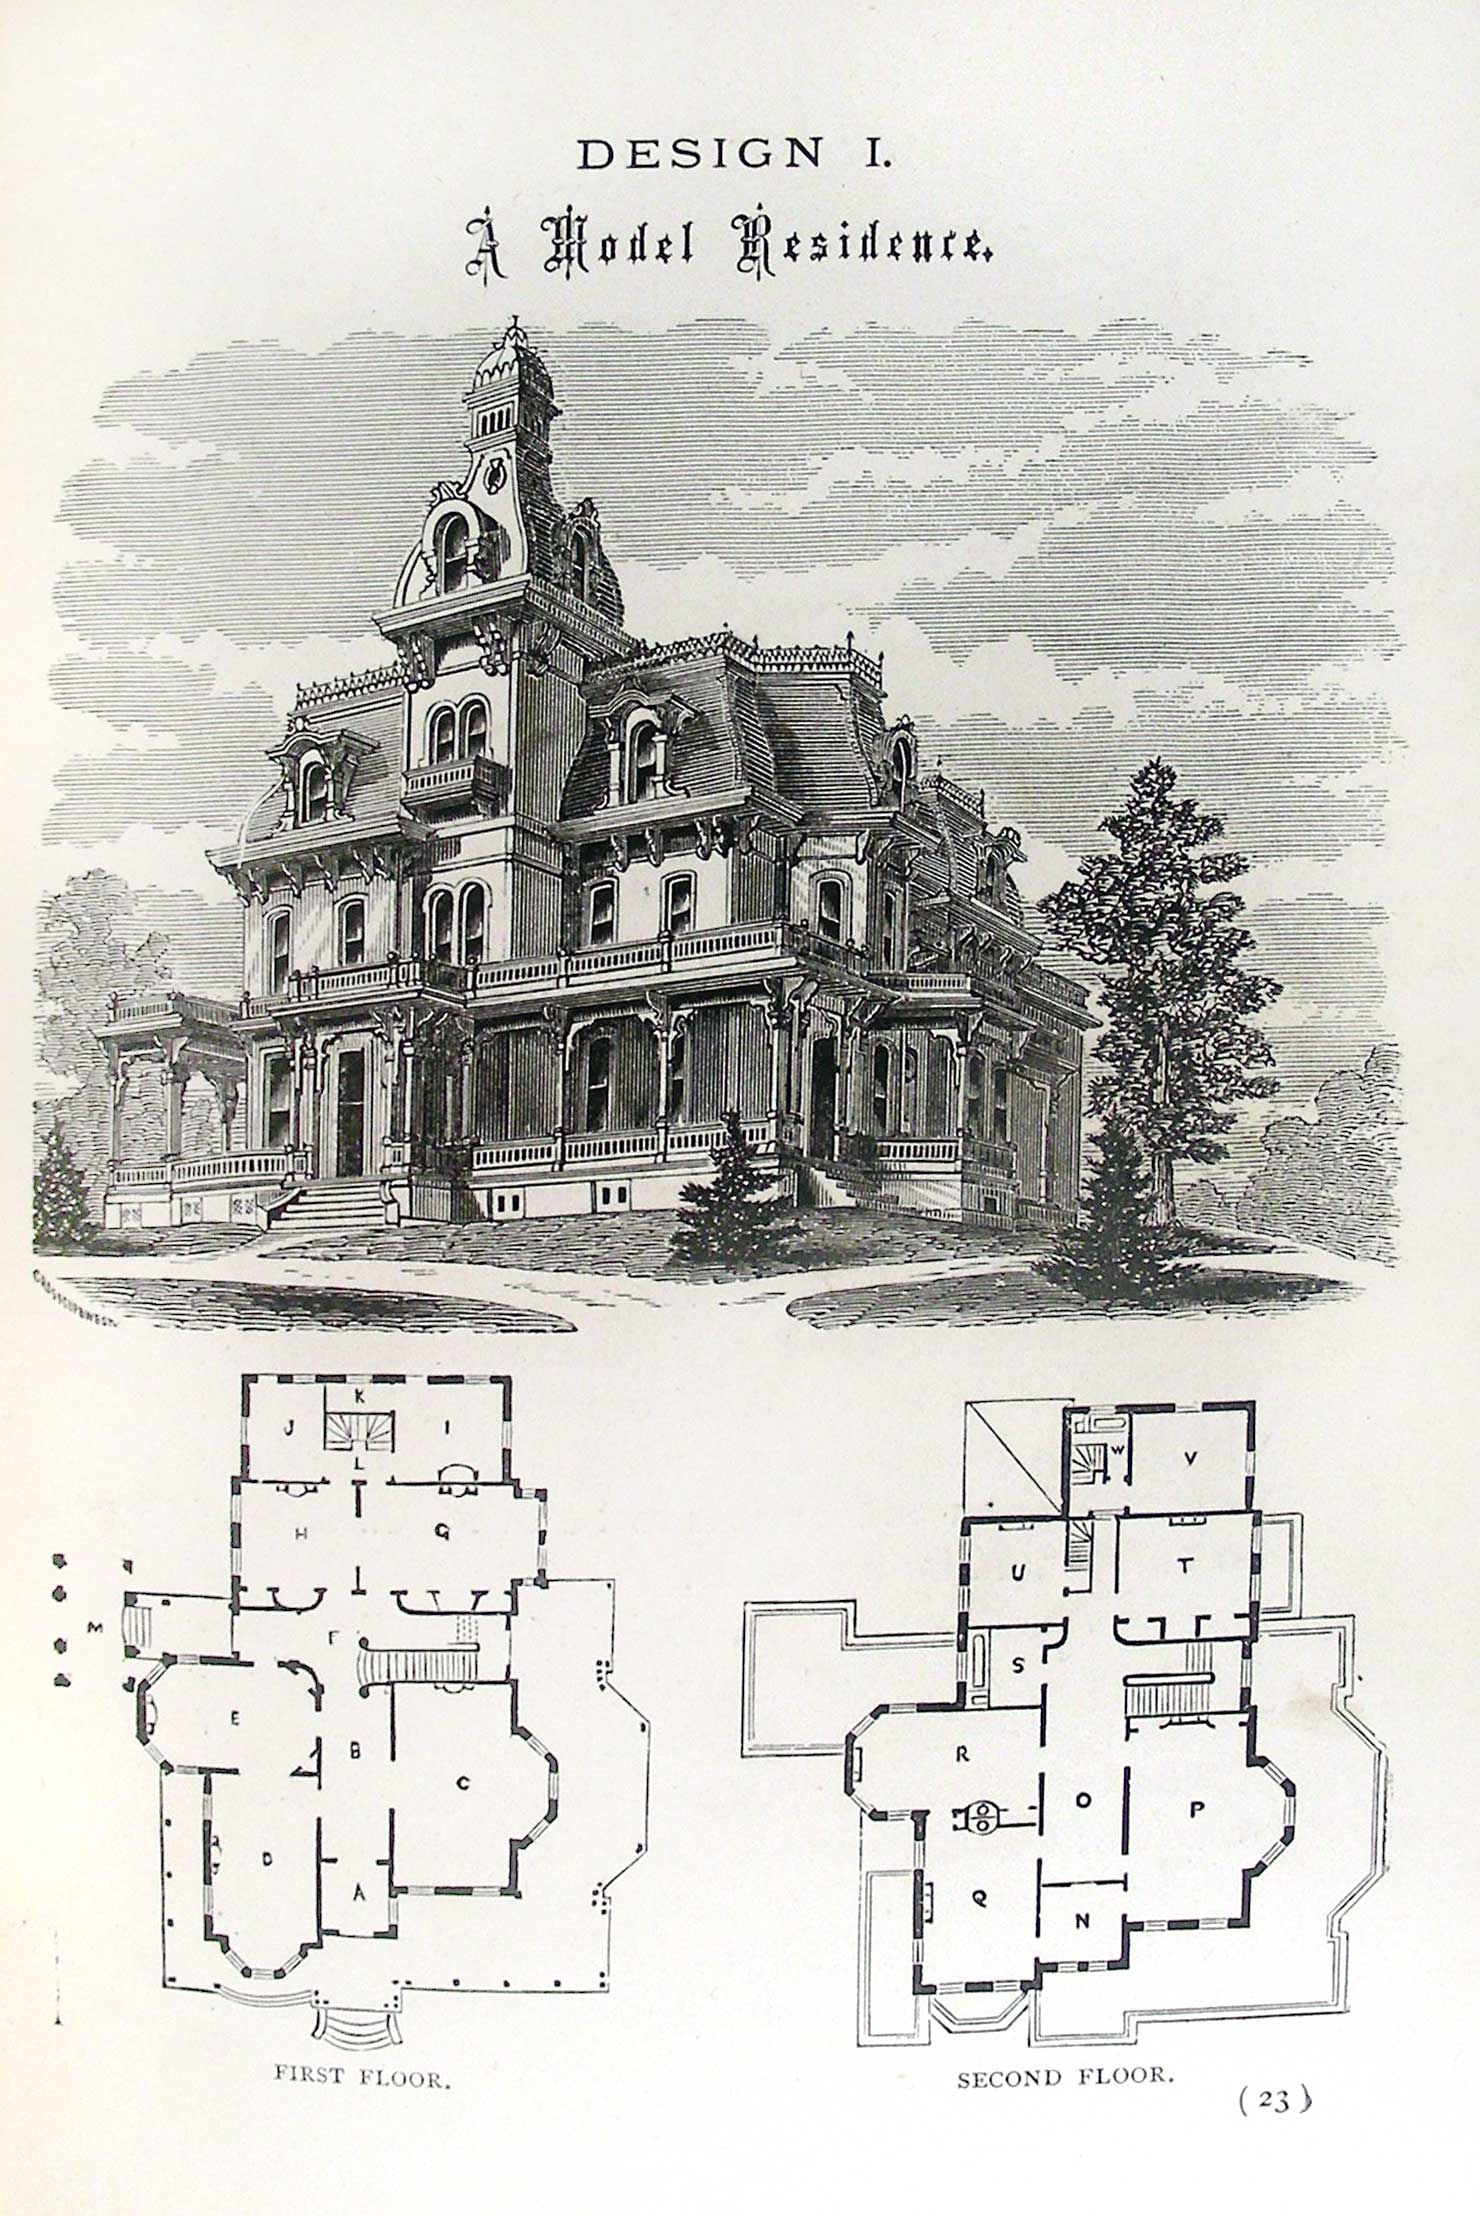 Pin By Karen Powell On Current Show Victorian House Plans Colonial House Plans Victorian Homes